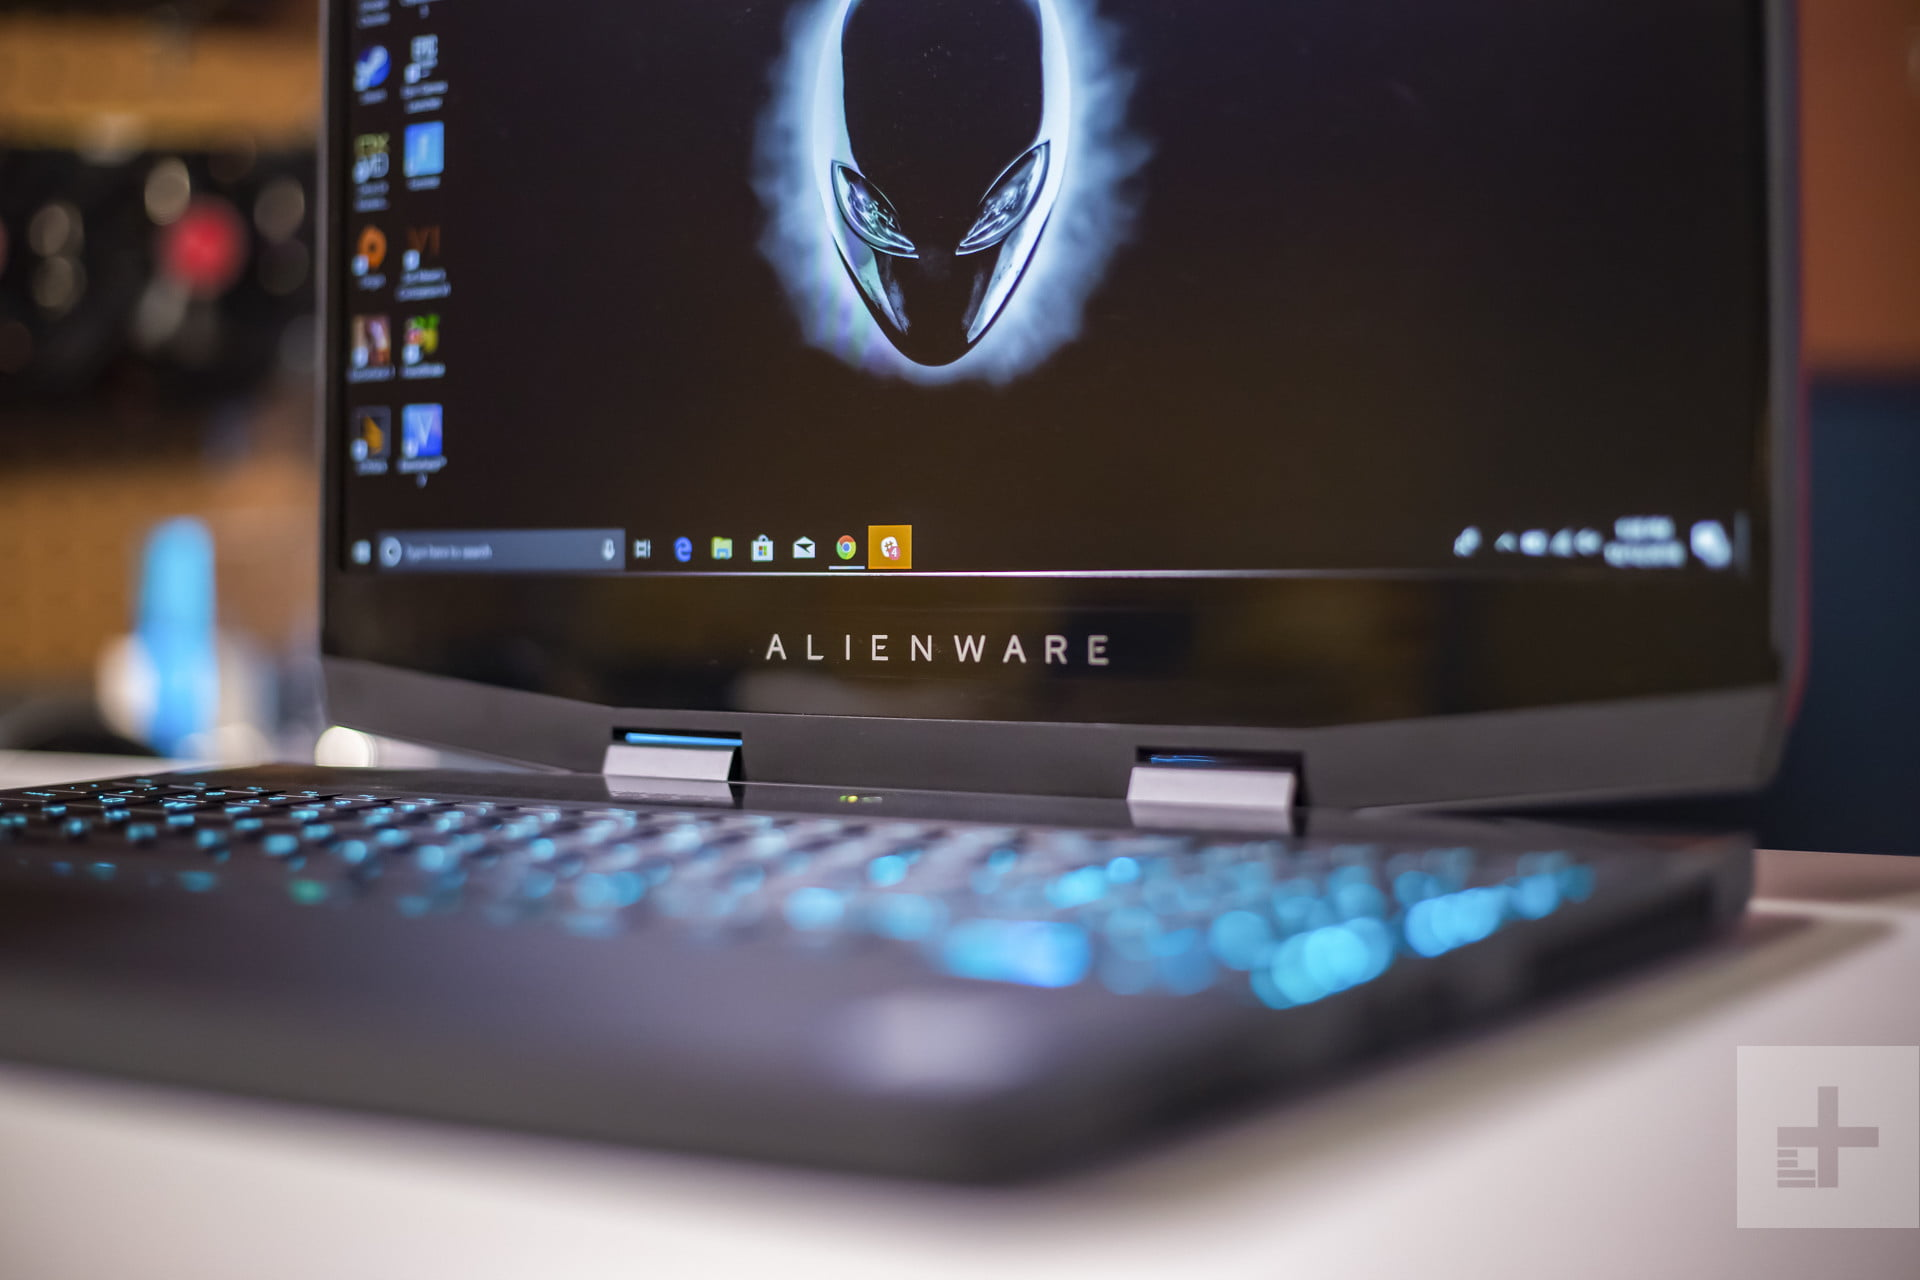 Killer deals on XPS 13 and Alienware laptops are still live for Cyber Monday